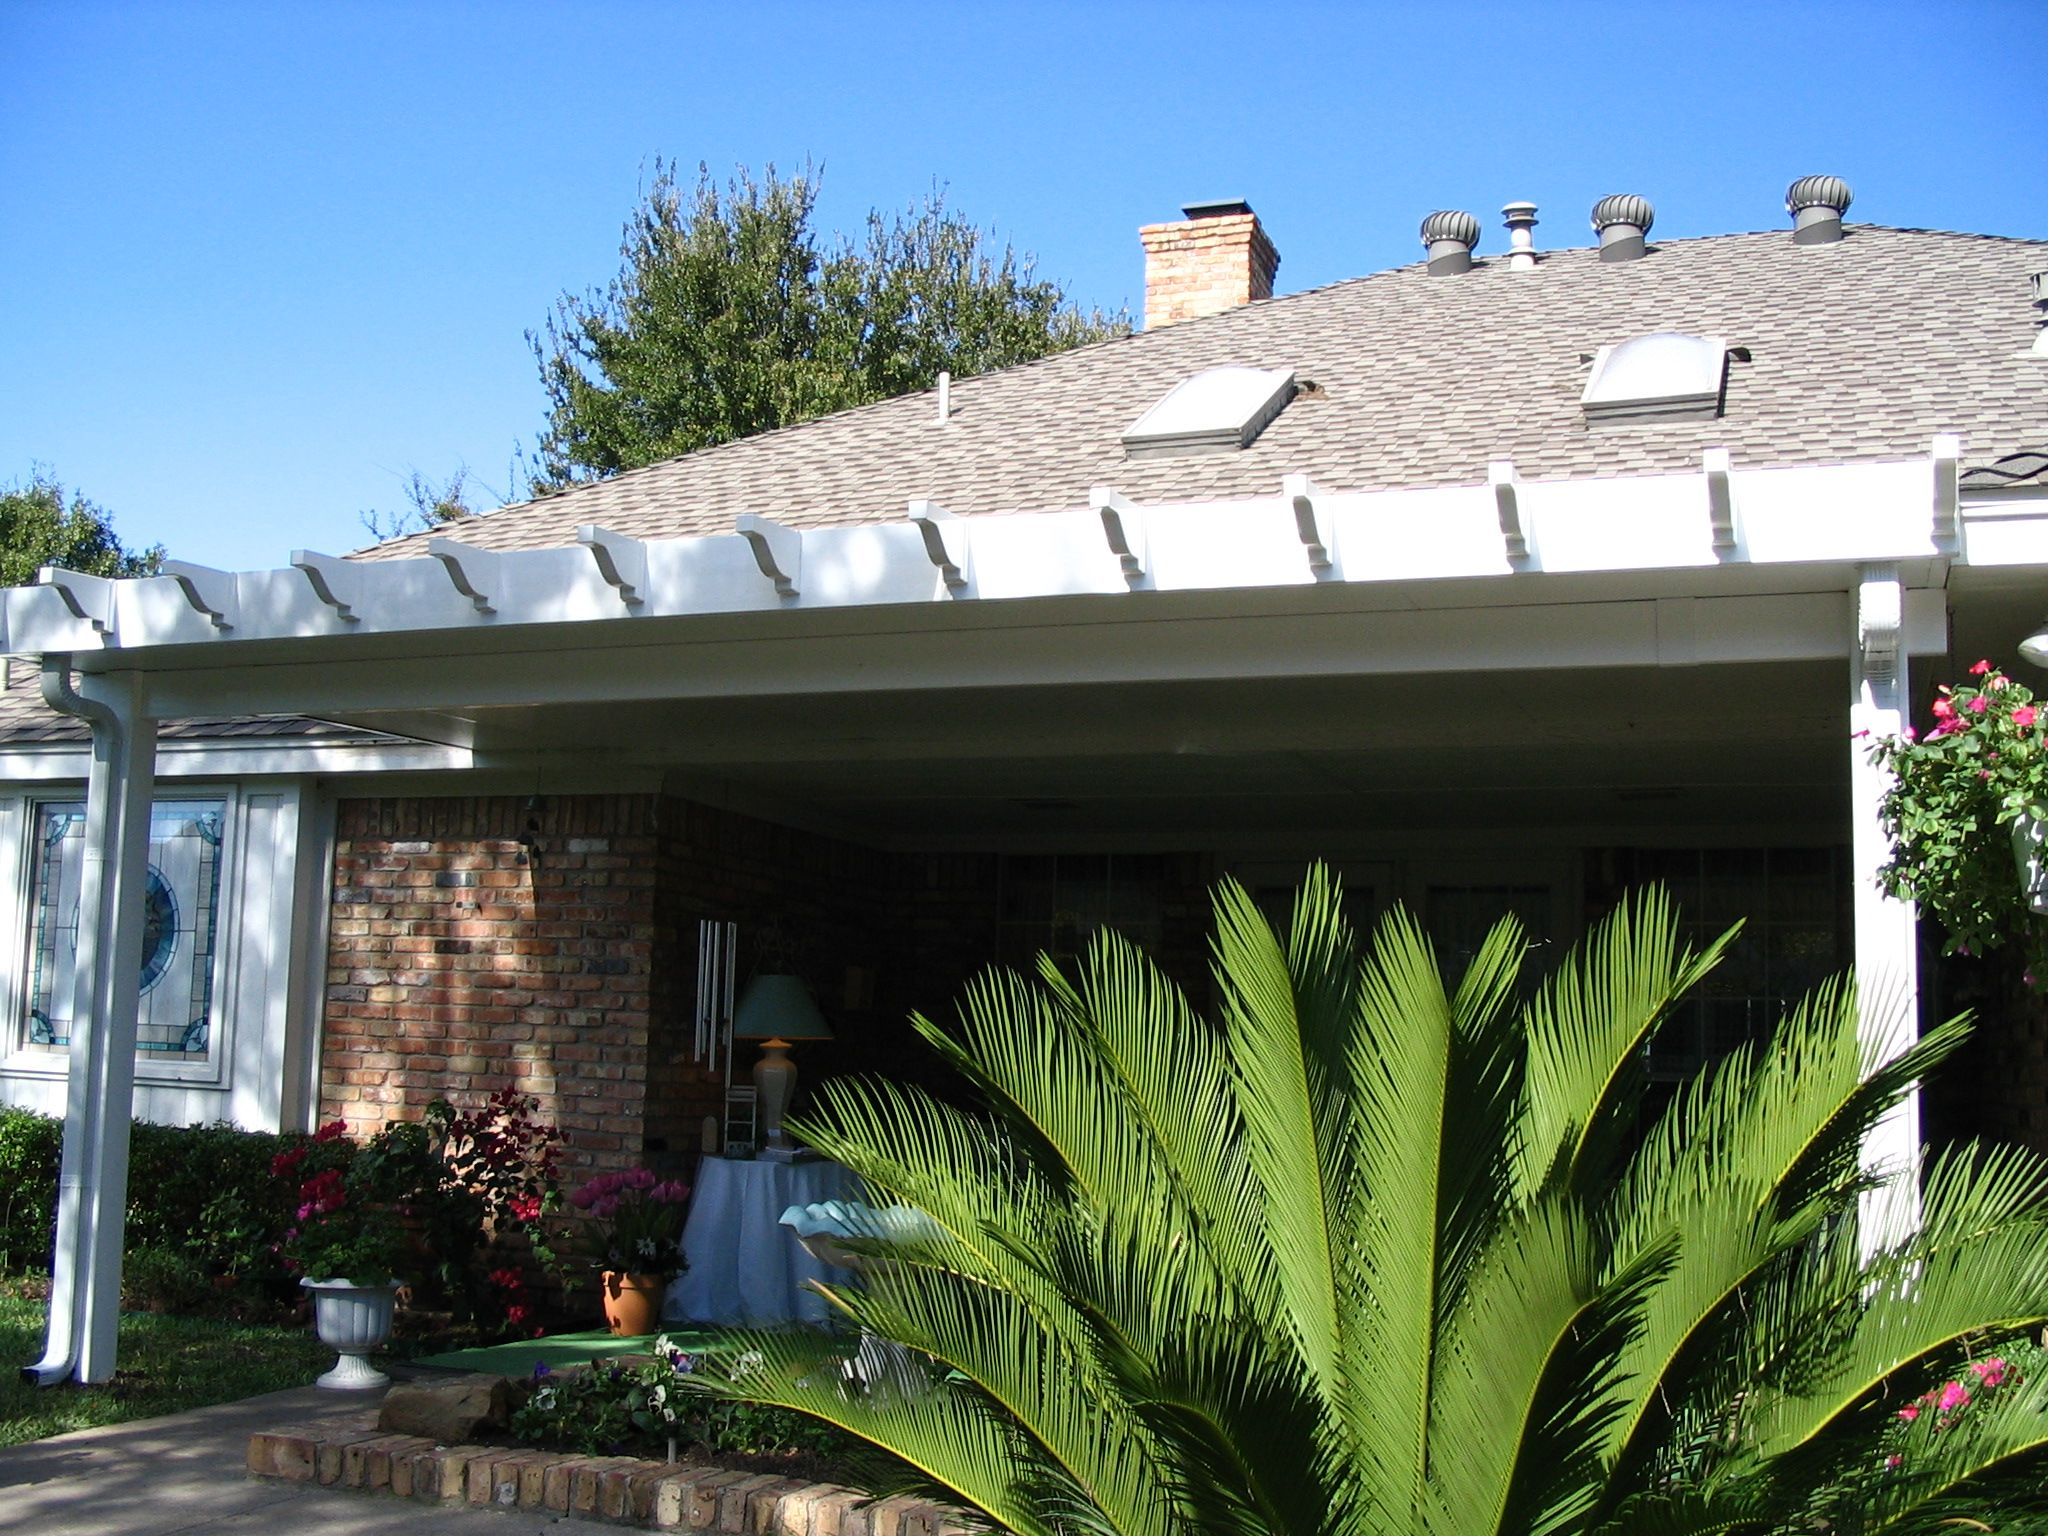 This Aluminum Patio Cover Is Installed With Vinyl Post, Vinyl Beams, And  Vinyl Rafters